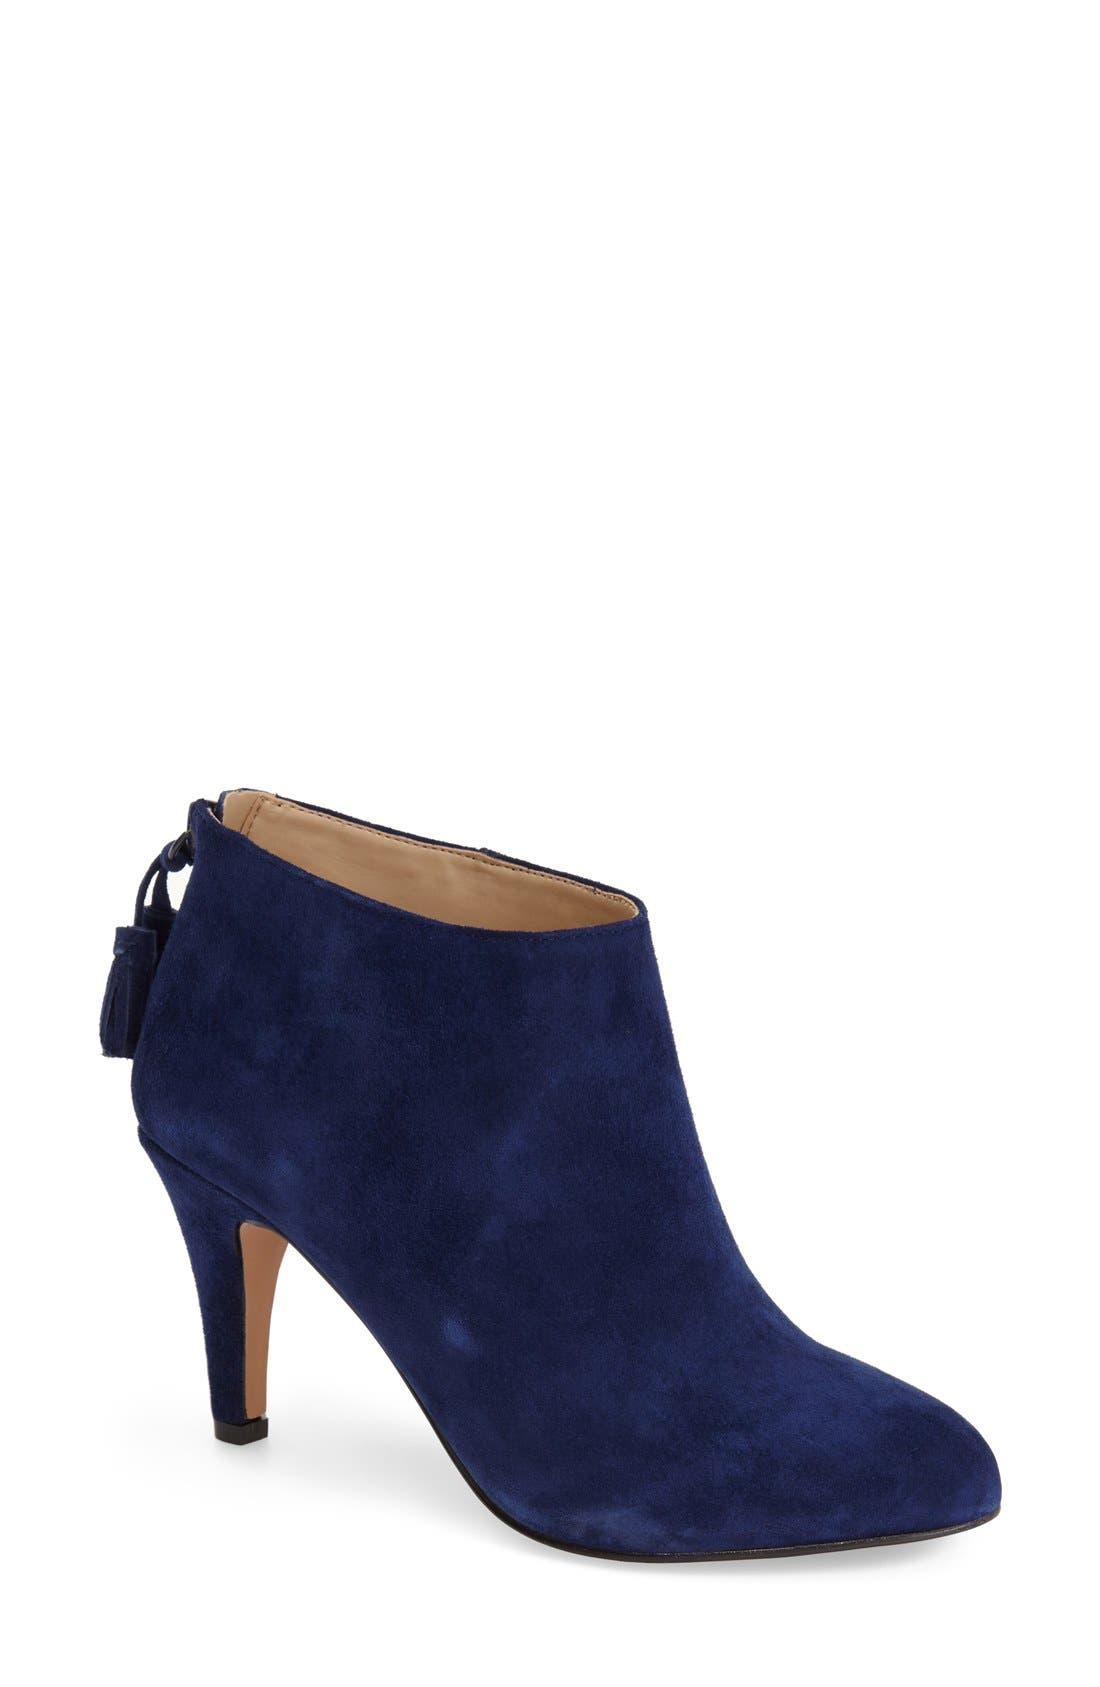 Alternate Image 1 Selected - Sole Society 'Aiden' Pointy Toe Bootie(Women)